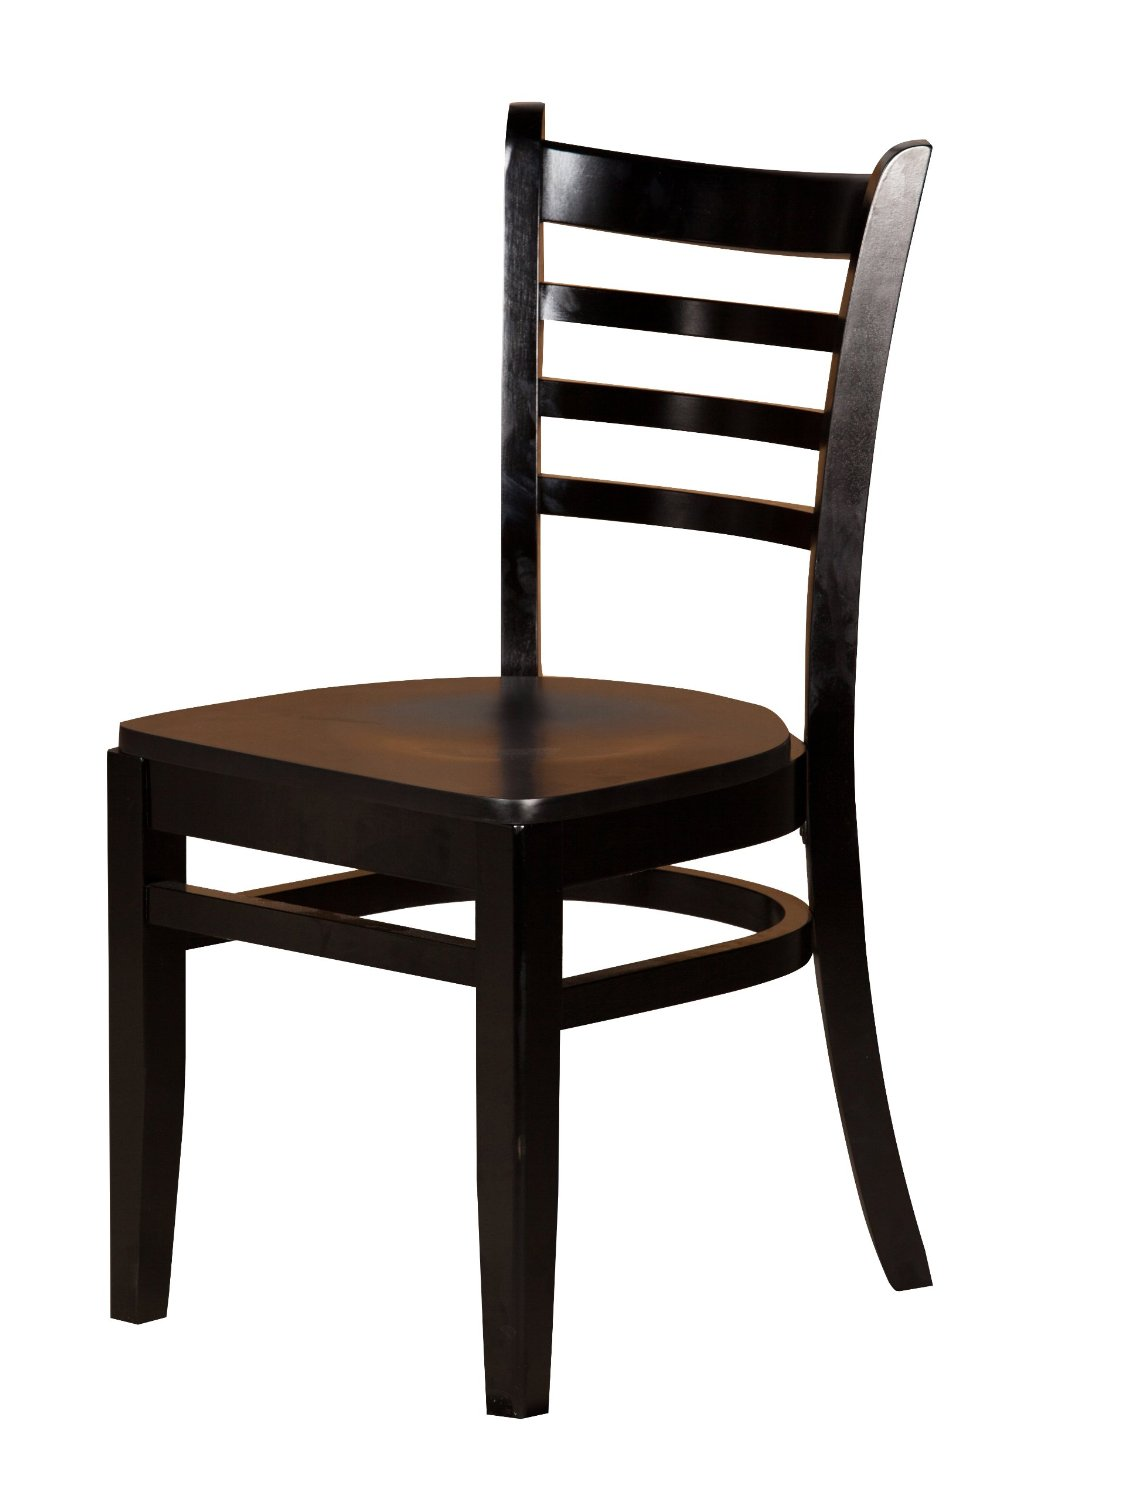 "Oak Street Manufacturing WC101BLK Solid Black Wood Frame Ladderback Dining Chair with Black Wood Seat, 18"" Width x 17"" Depth"